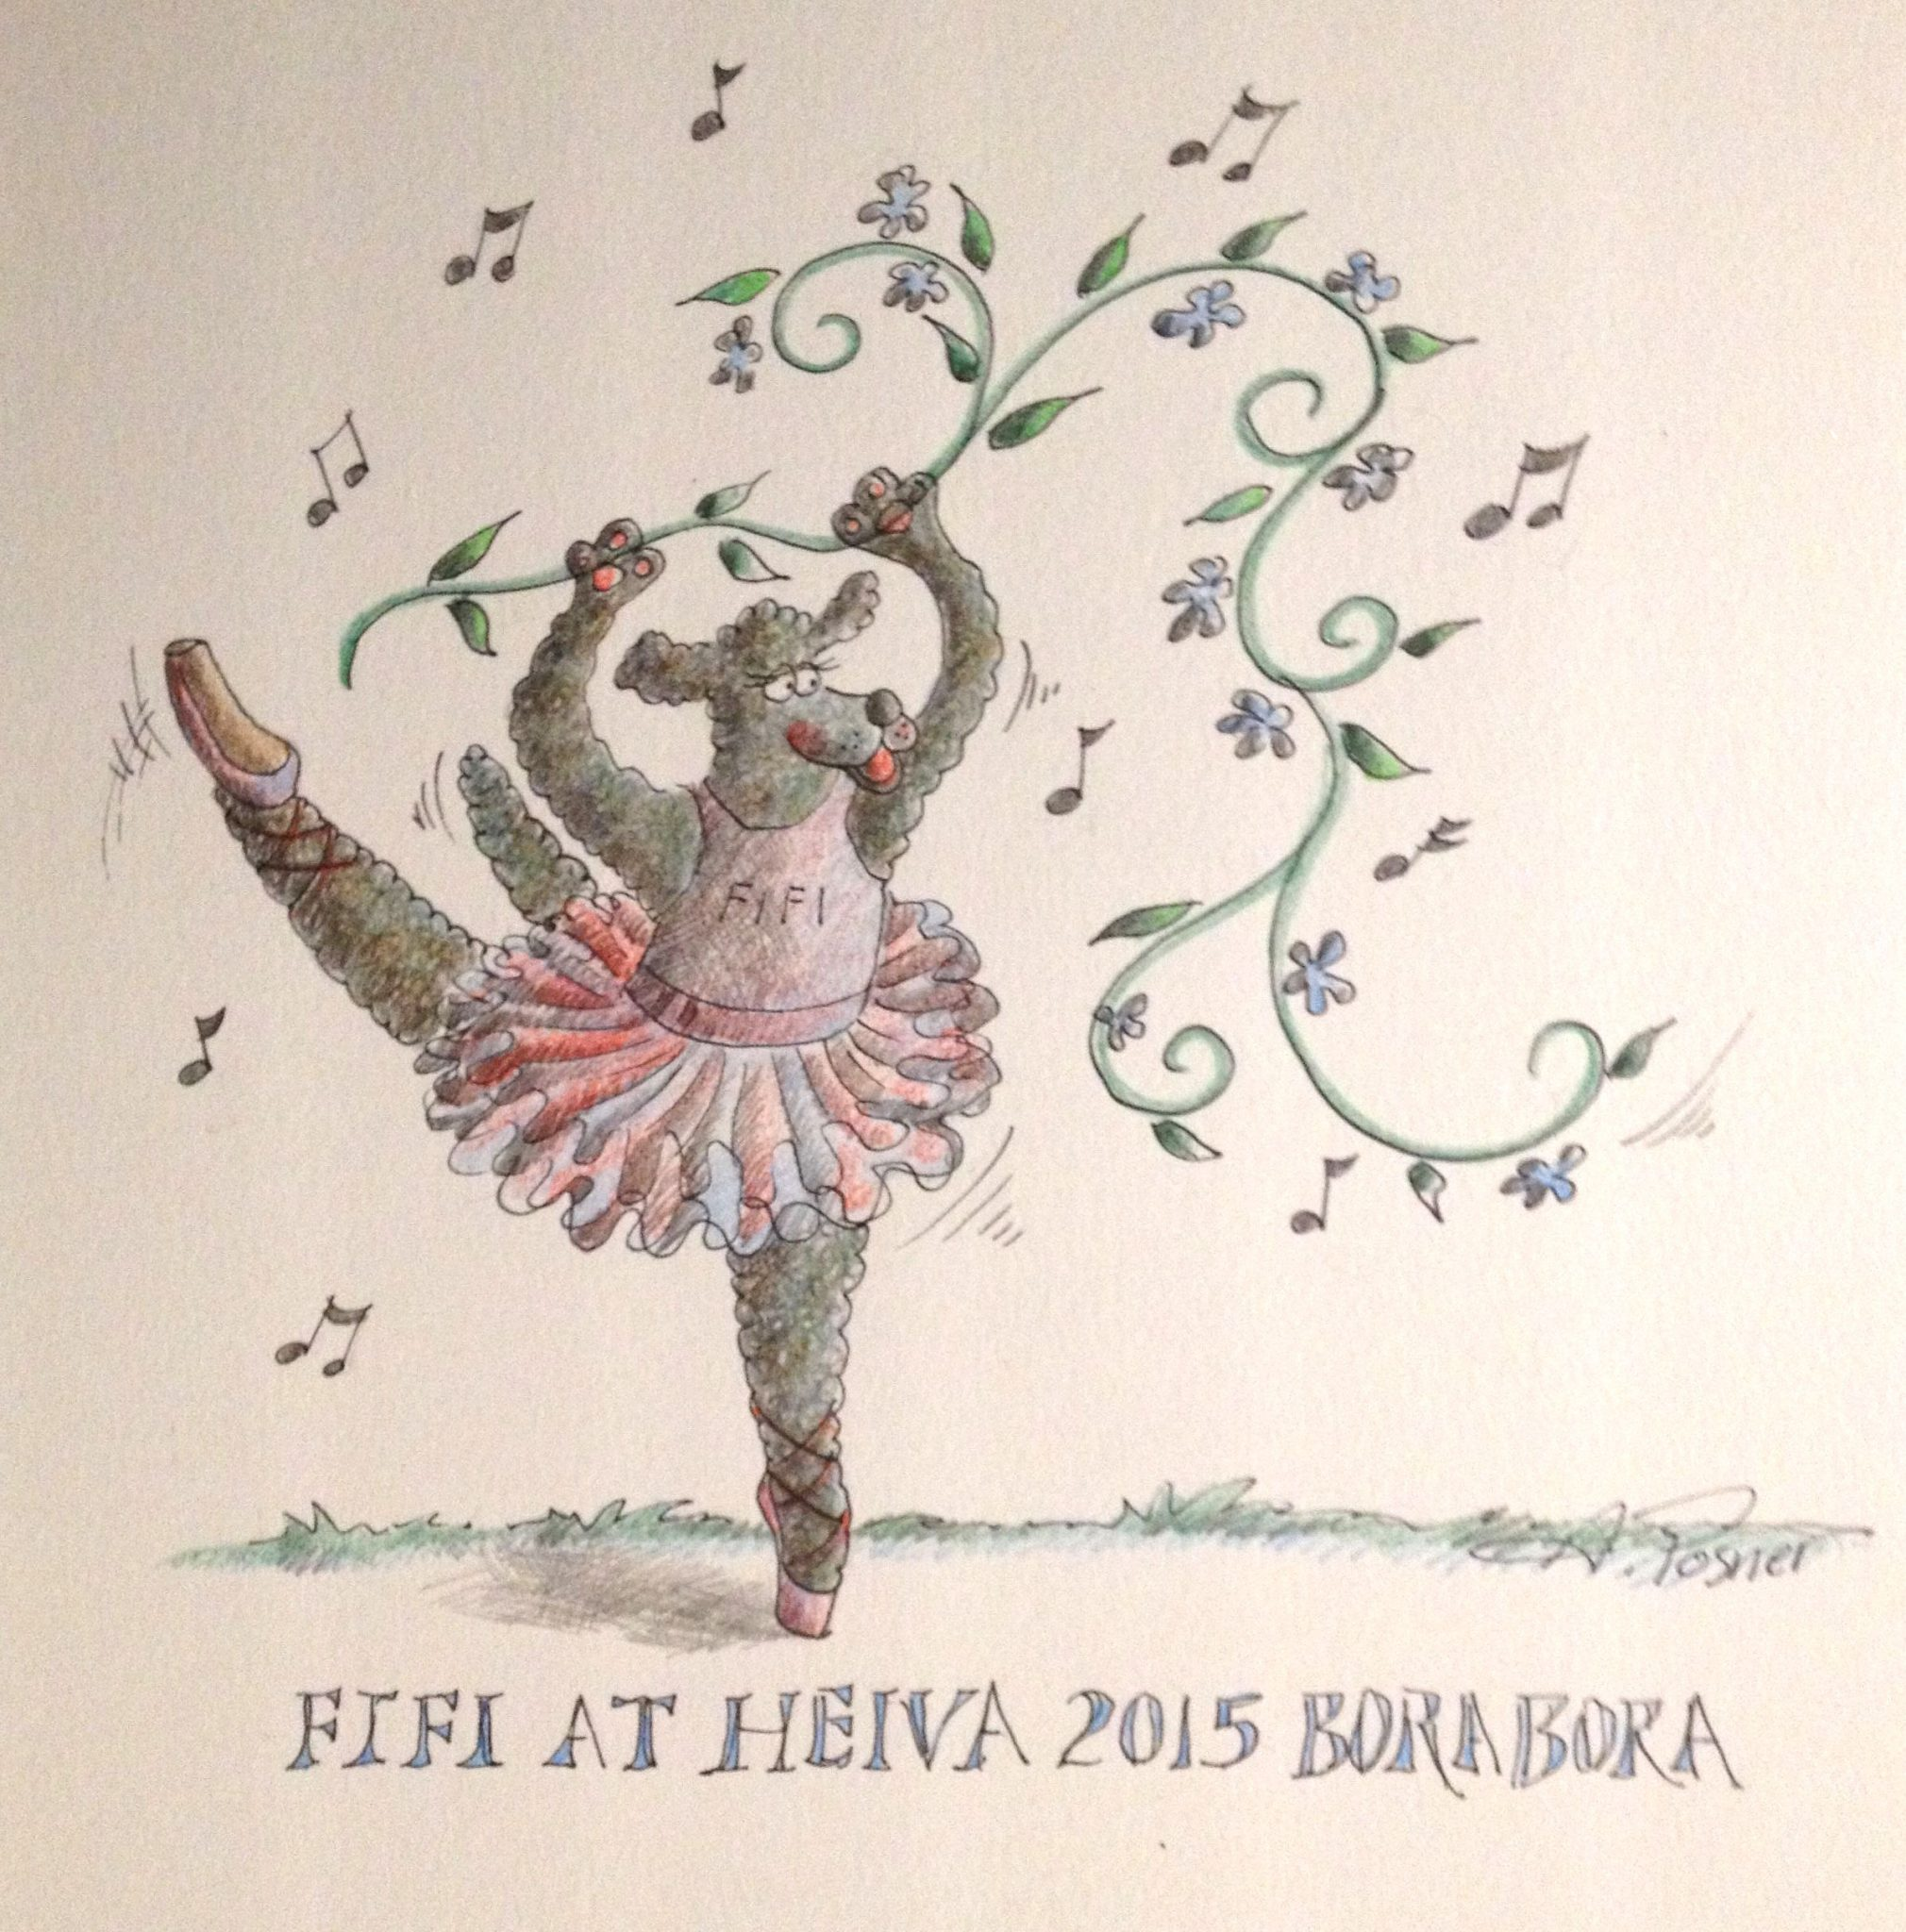 18. This is Anne's drawing of Fifi, Gerard's French Poodle at Heiva Bora Bora 2015.  Gerard kindly let Joyful use one of his mooring lines all month to keep her steady on Teiva's dock in the lagoon